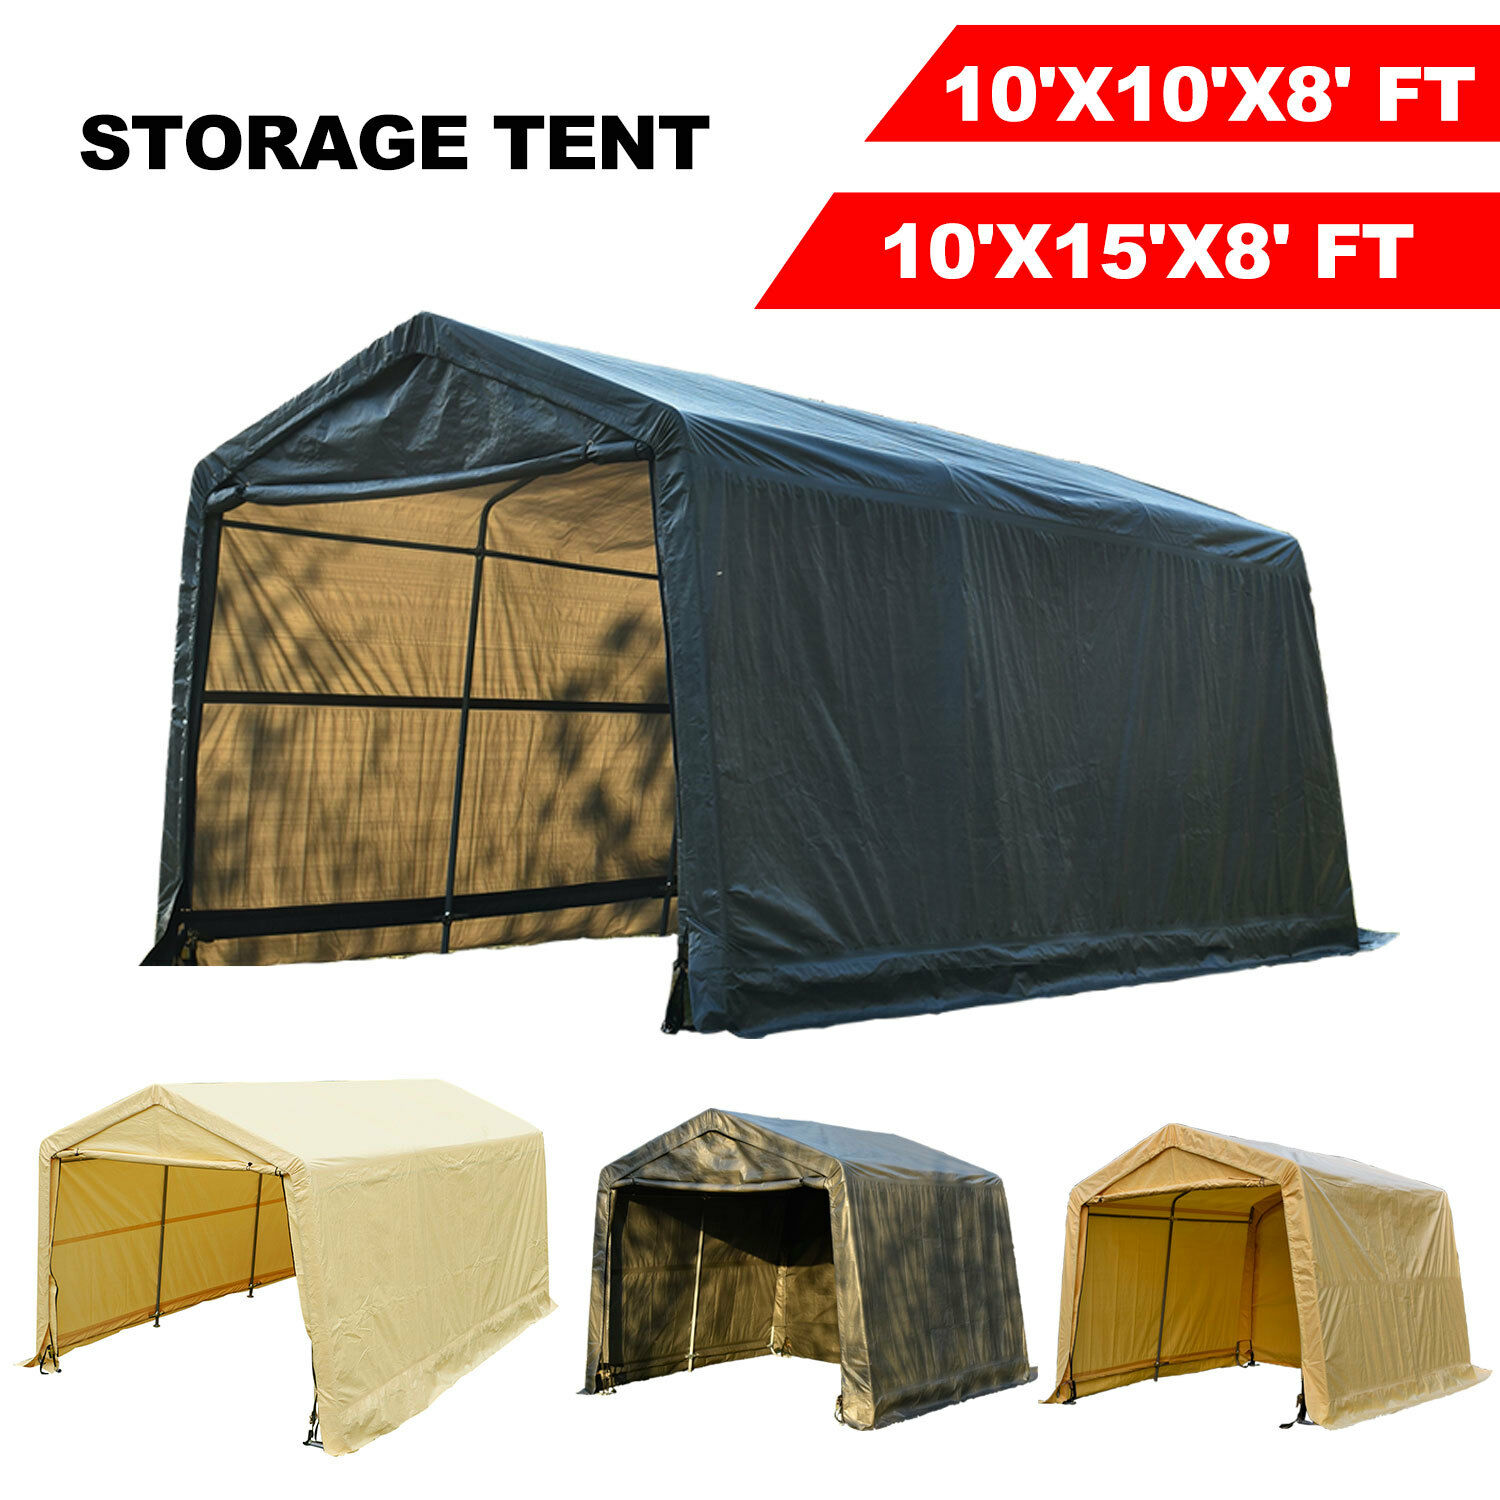 10'x10'x8'/10'x15'x8'FT Storage Shed Tent Shelter Car Garage